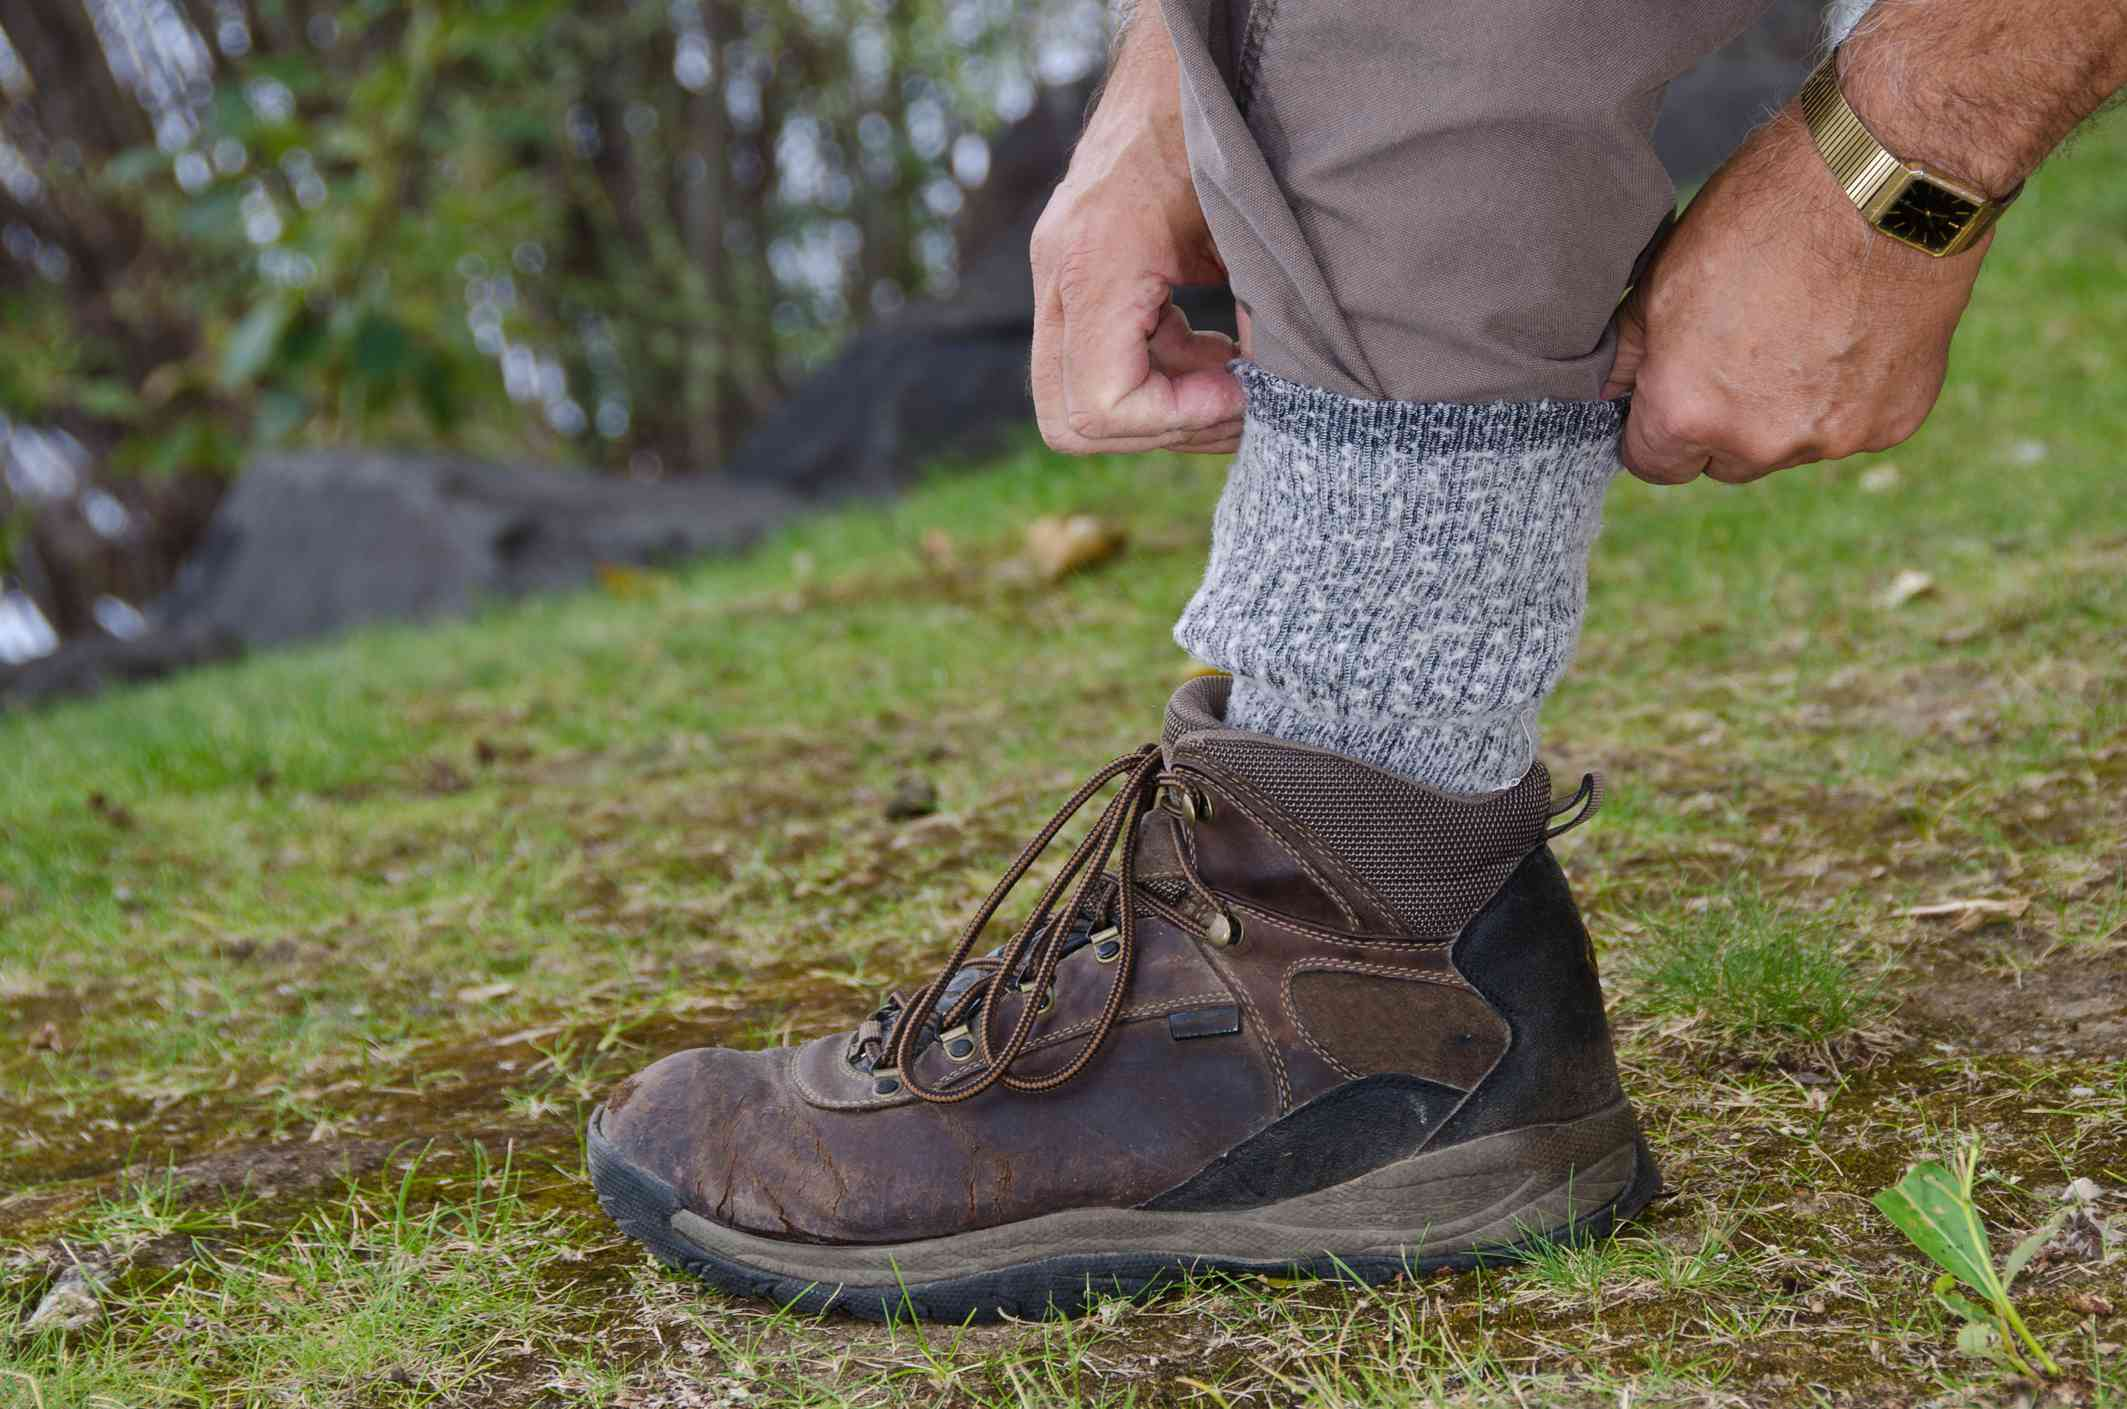 Protect yourself from chiggers with pants and boots